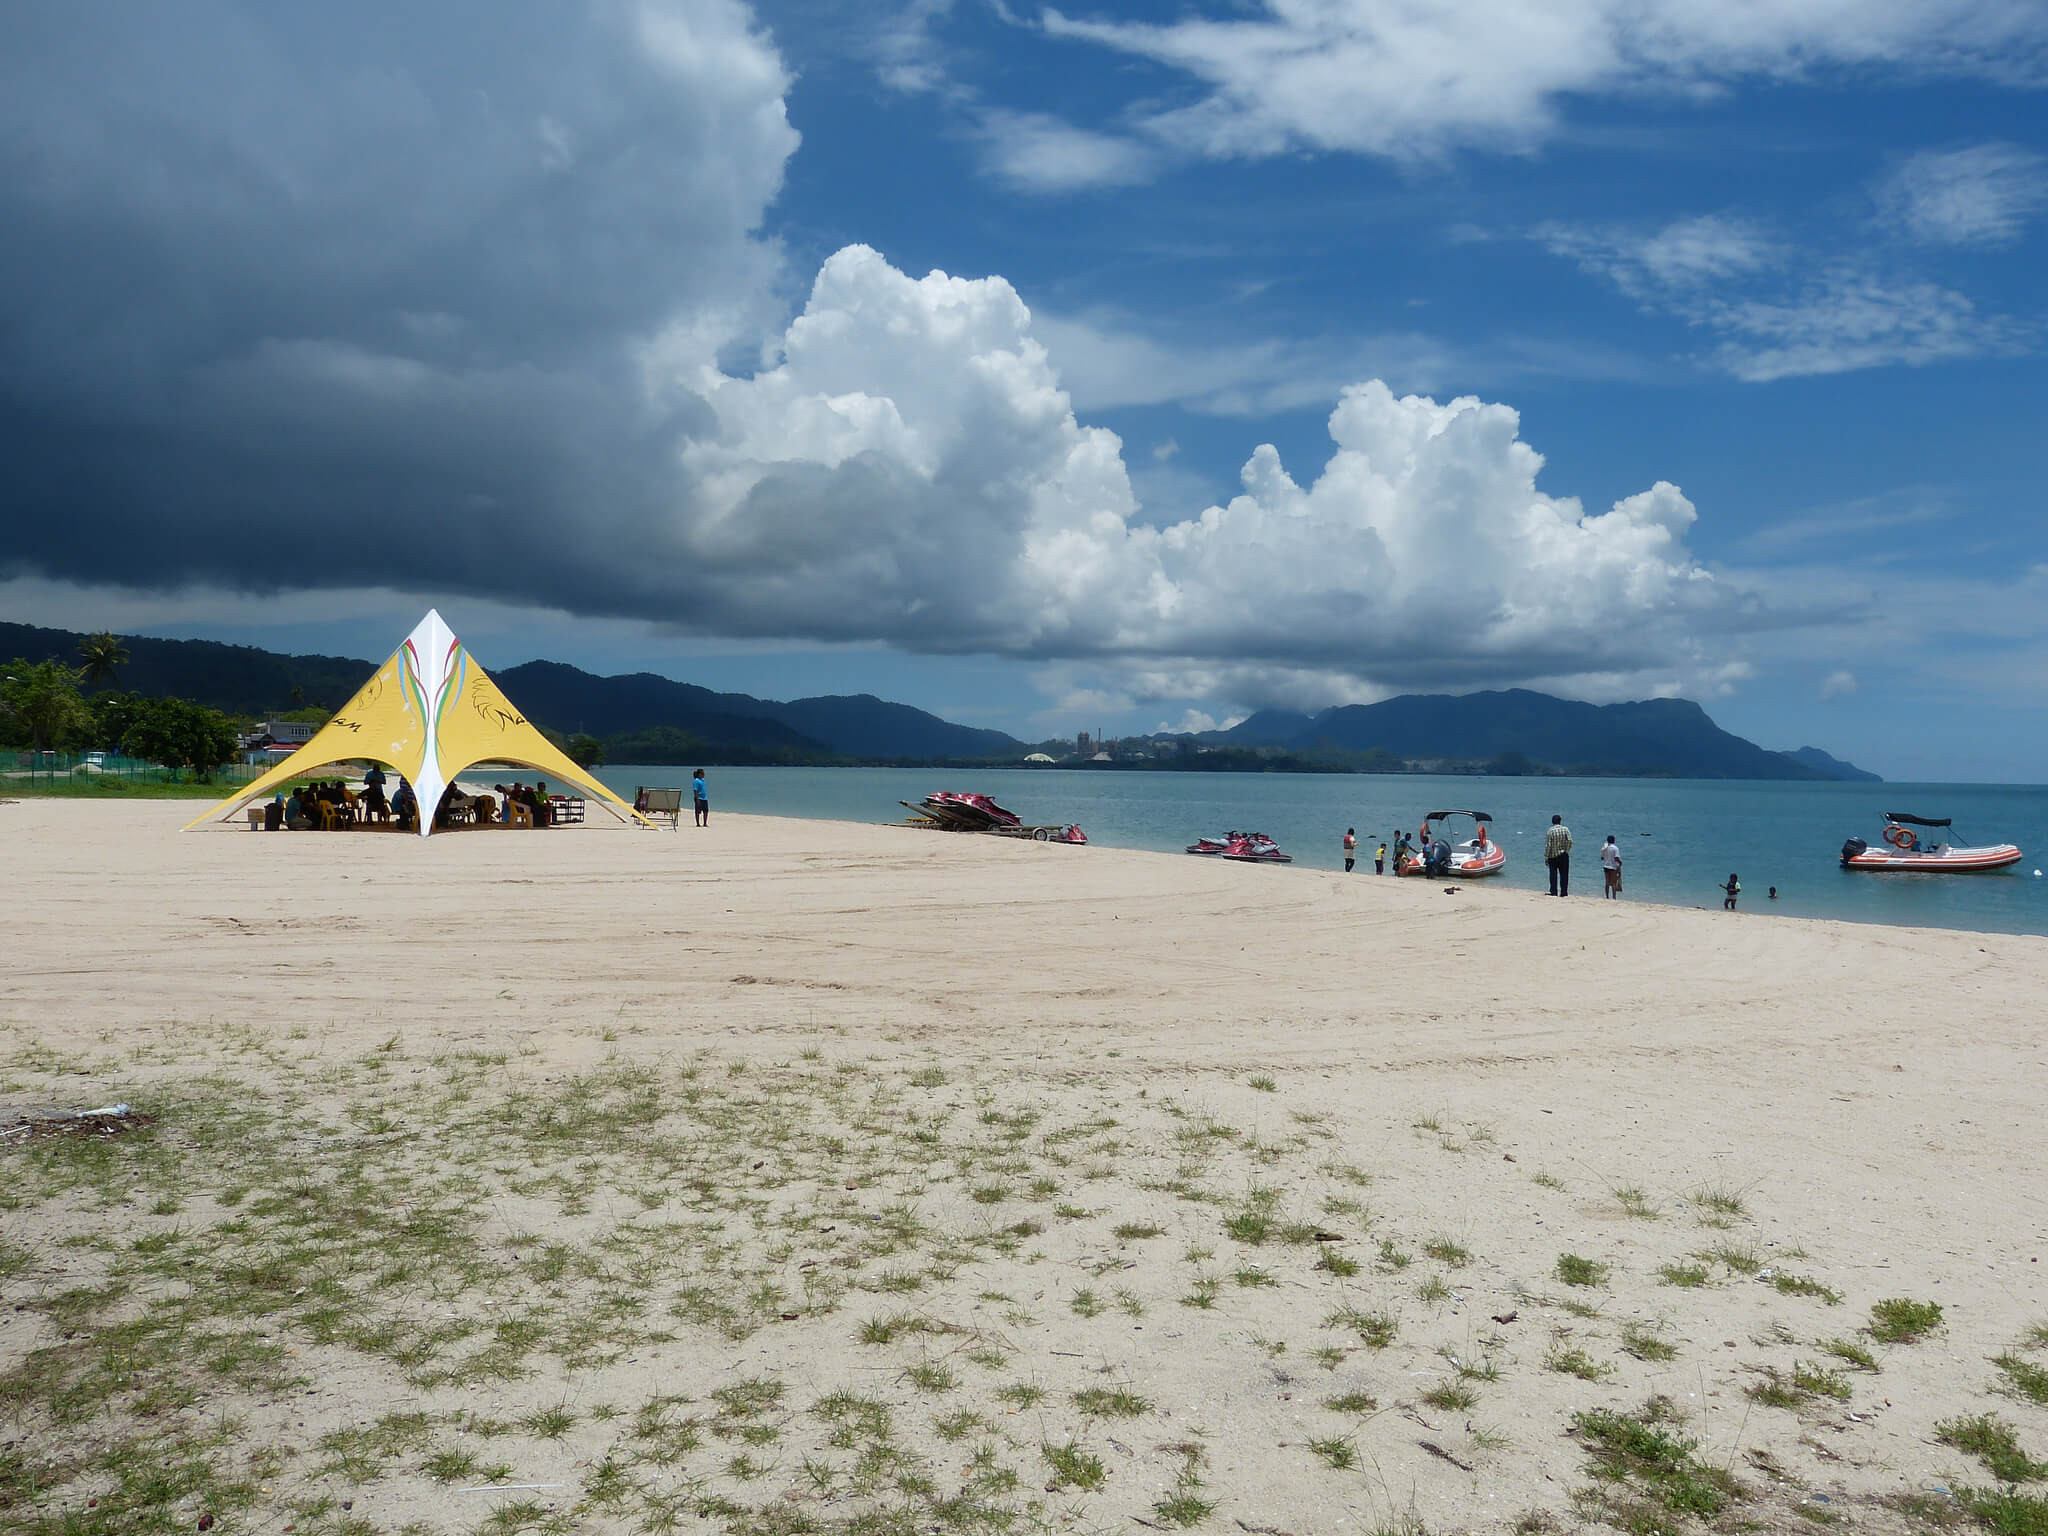 Tourists wait in a tent at Tanjung Rhu Beach for their turn to take a speed boat ride in the sea